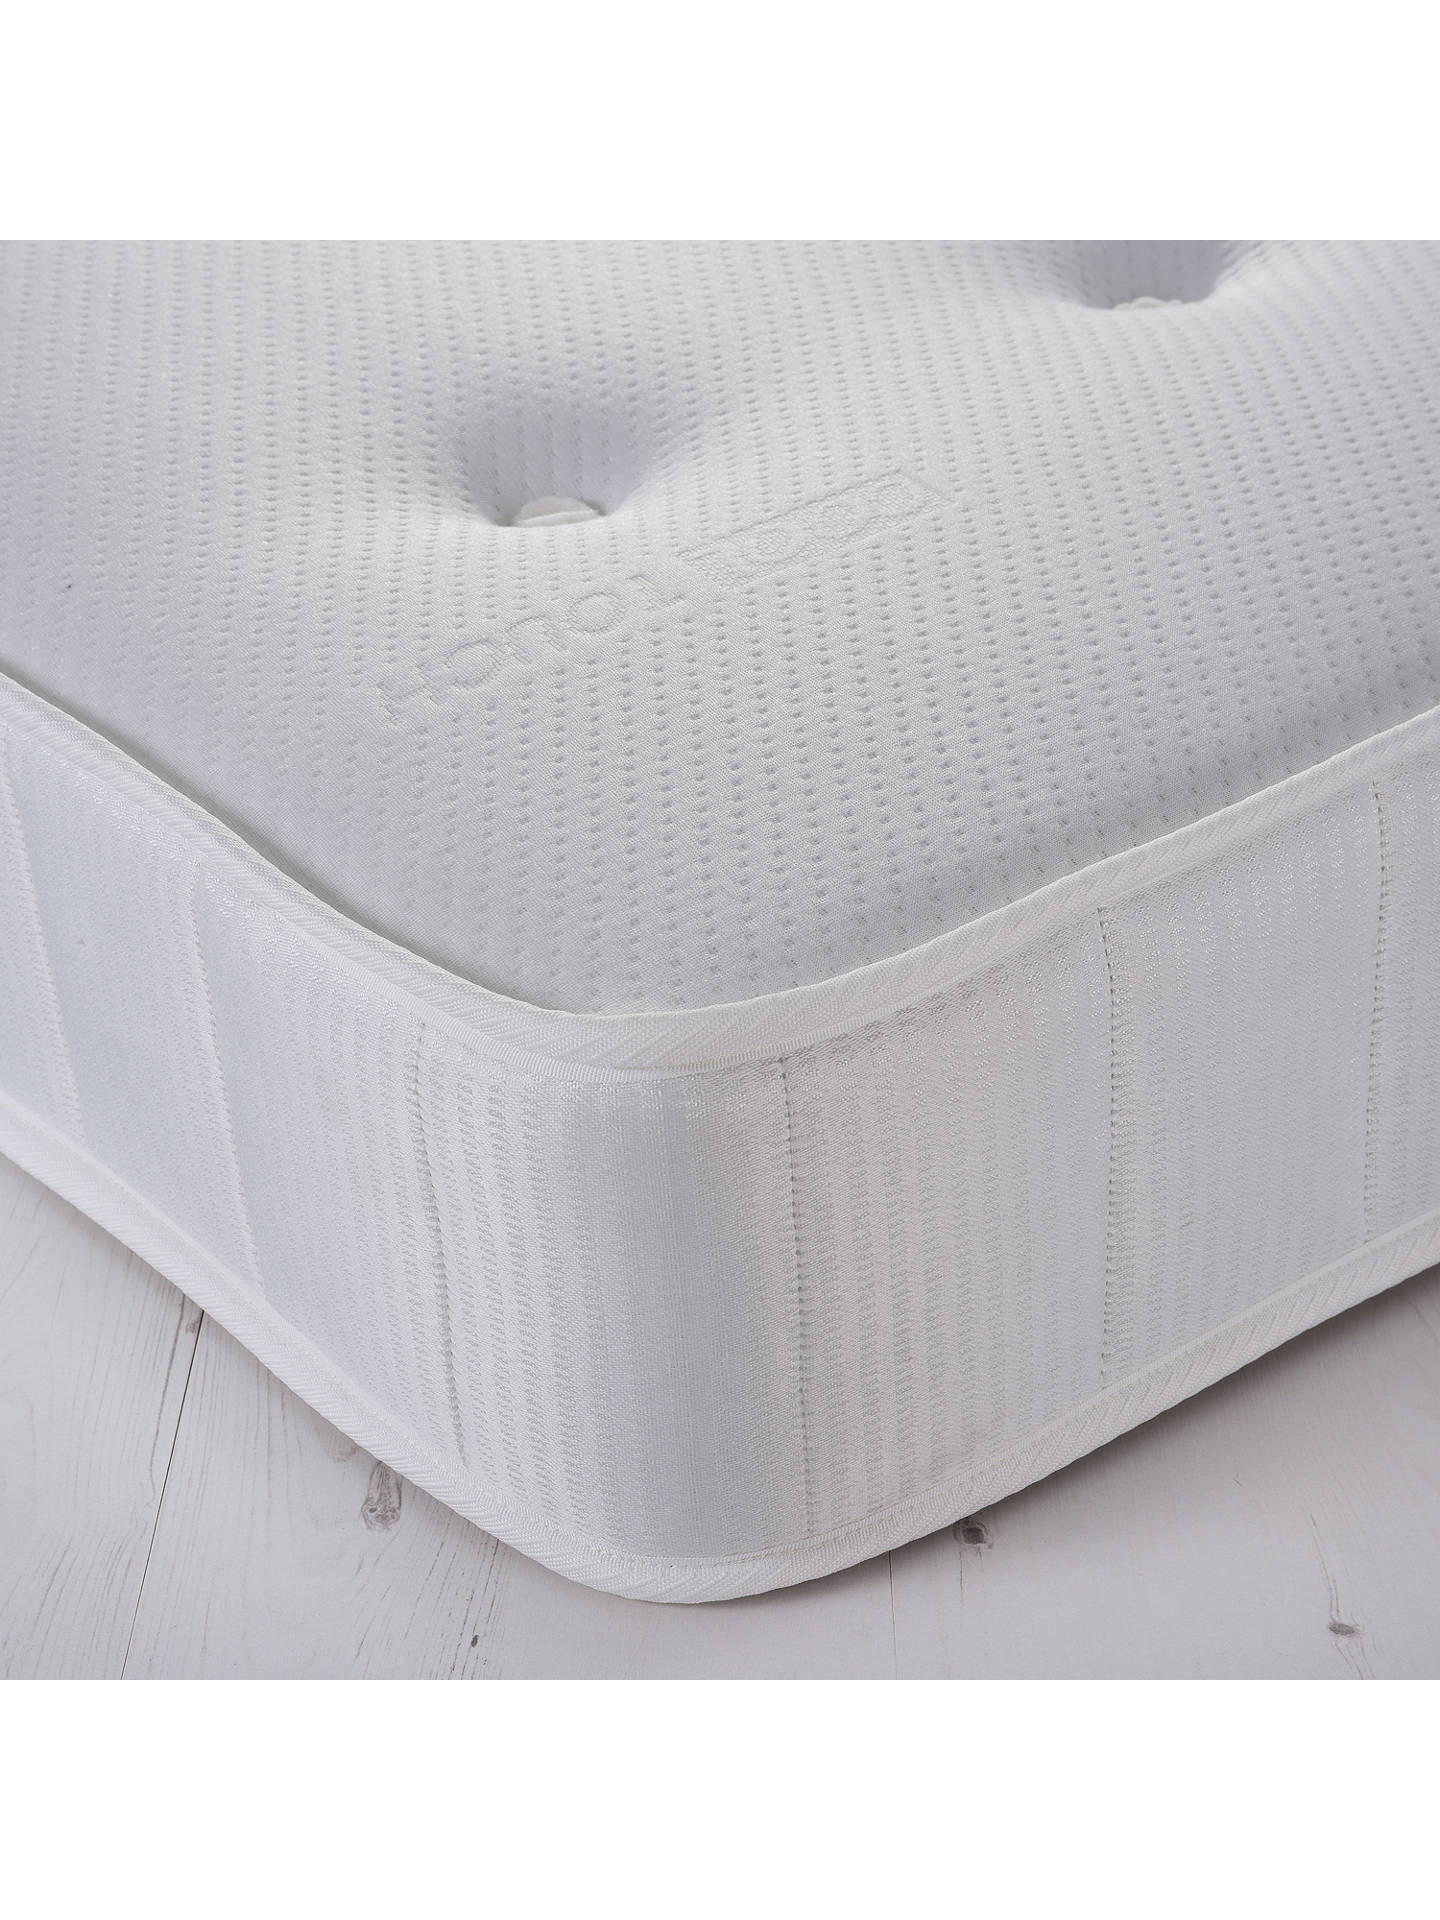 BuyJohn Lewis Essentials Collection Response 920 Ortho Open Spring Mattress, Firm, Double Online at johnlewis.com